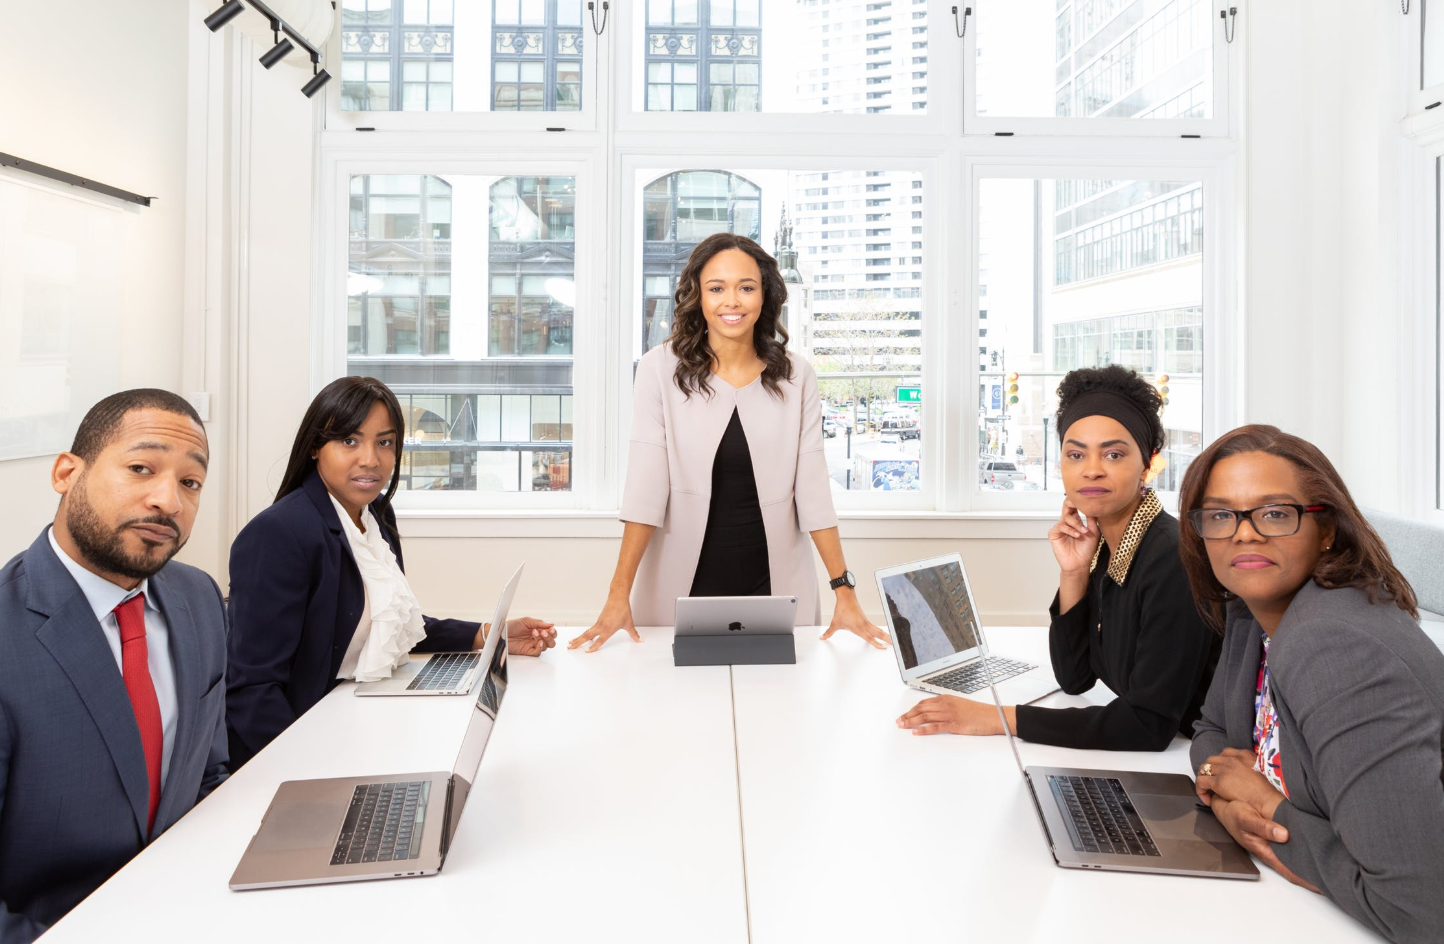 How to manage microaggressions in the workplace: A 2020 guide